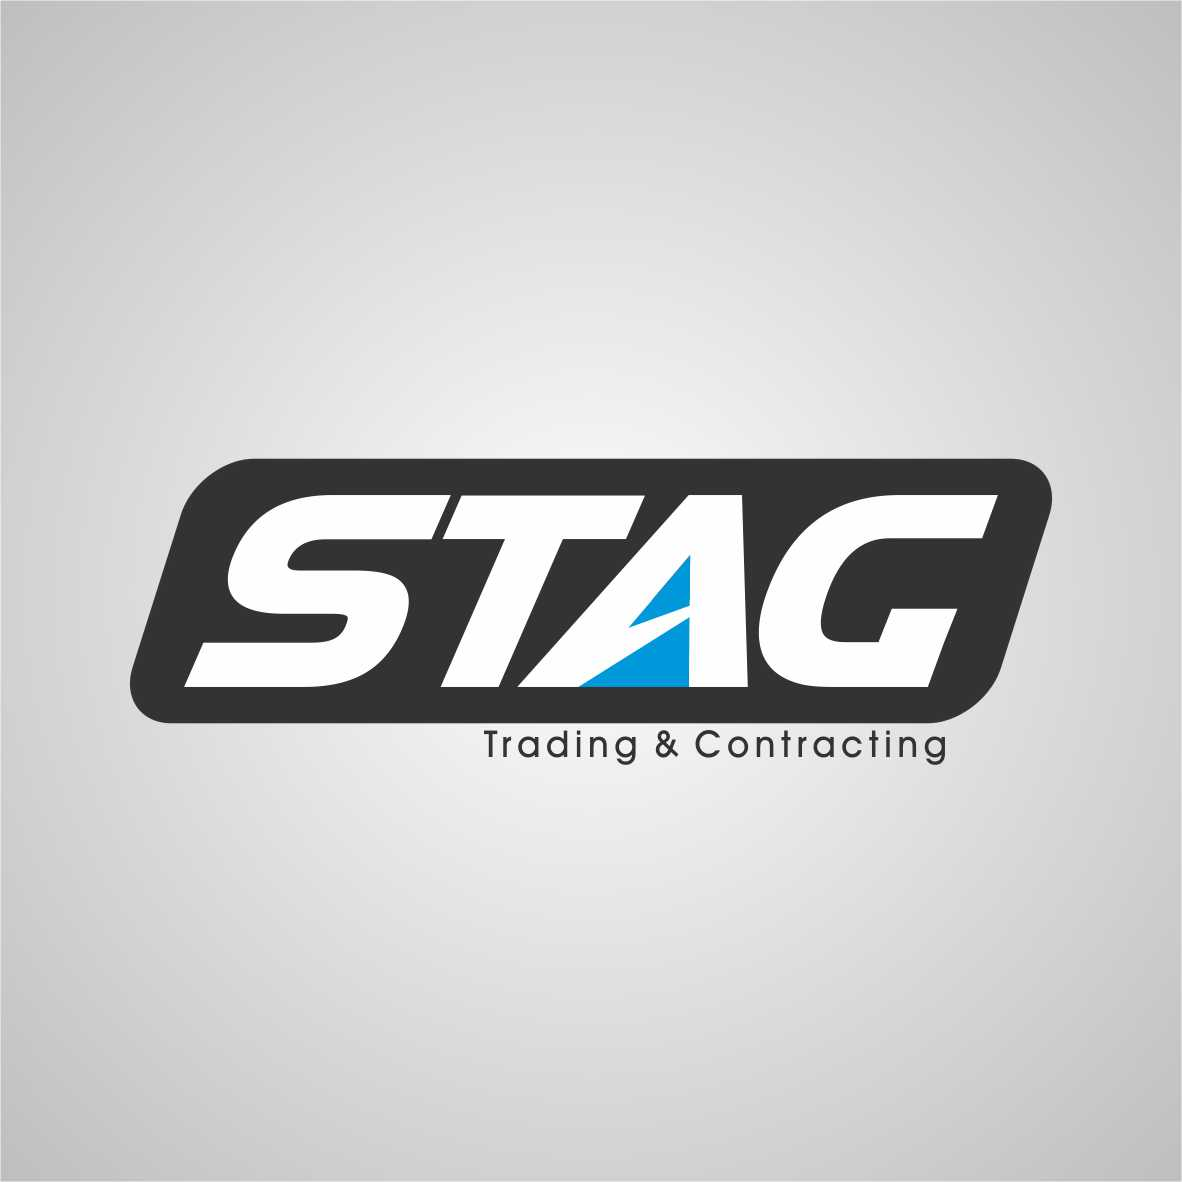 Logo Design by arteo_design - Entry No. 136 in the Logo Design Contest Captivating Logo Design for STAG Trading & Contracting.